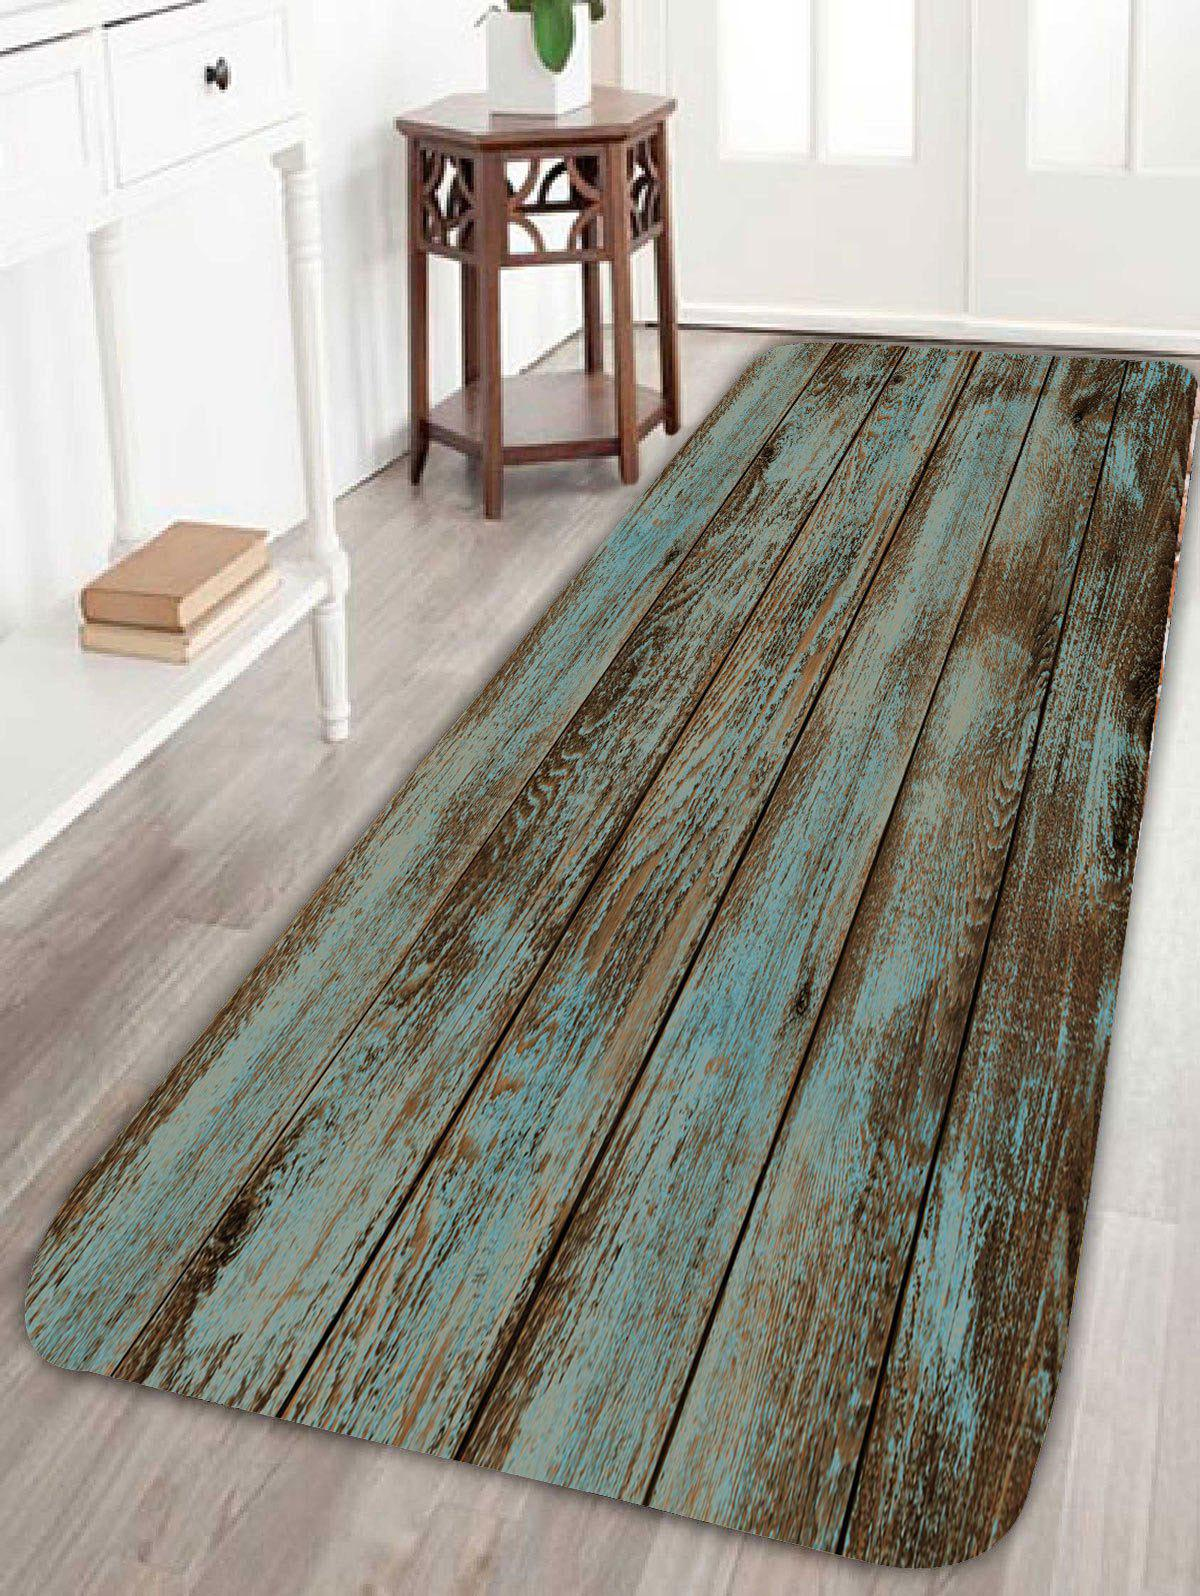 Vintage Wood Grain Printed Bathroom RugHOME<br><br>Size: W16 INCH * L47 INCH; Color: GREEN; Products Type: Bath rugs; Materials: Coral FLeece; Pattern: Print; Style: Vintage; Shape: Rectangle; Package Contents: 1 x Rug;